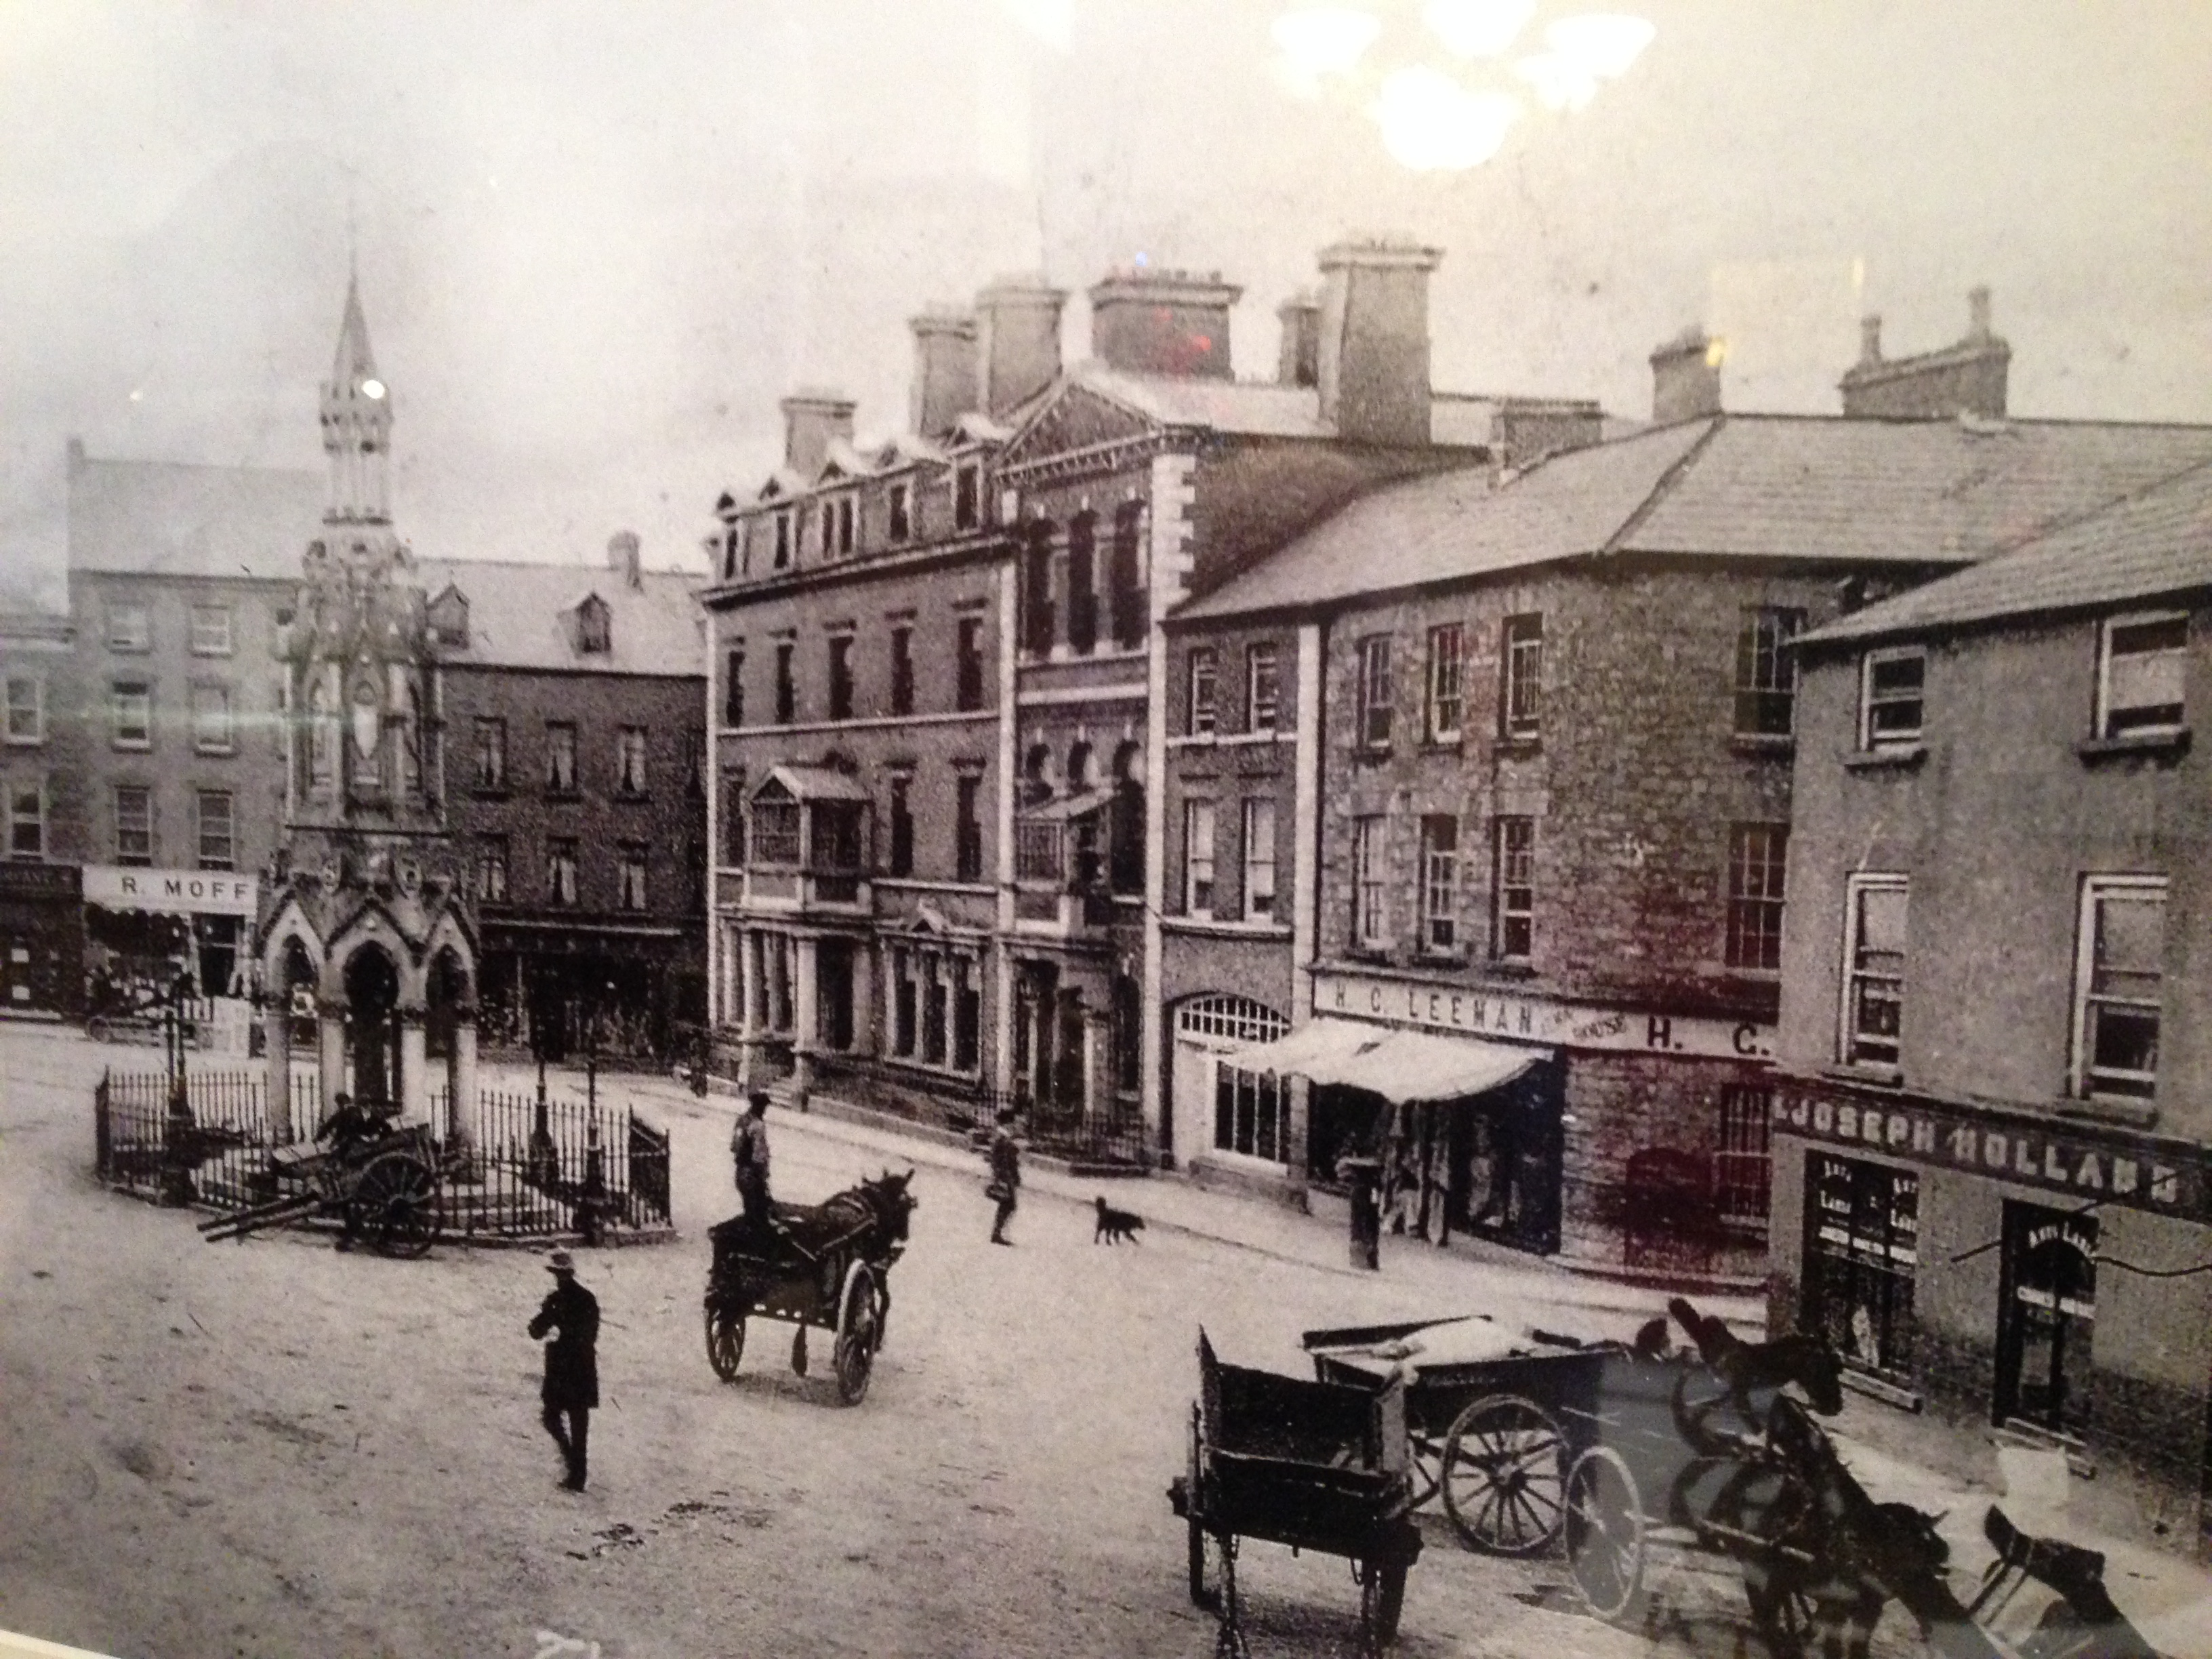 Knoxs Temperance Hotel Monaghan (Where George Jeffreys first met to form Elim).J